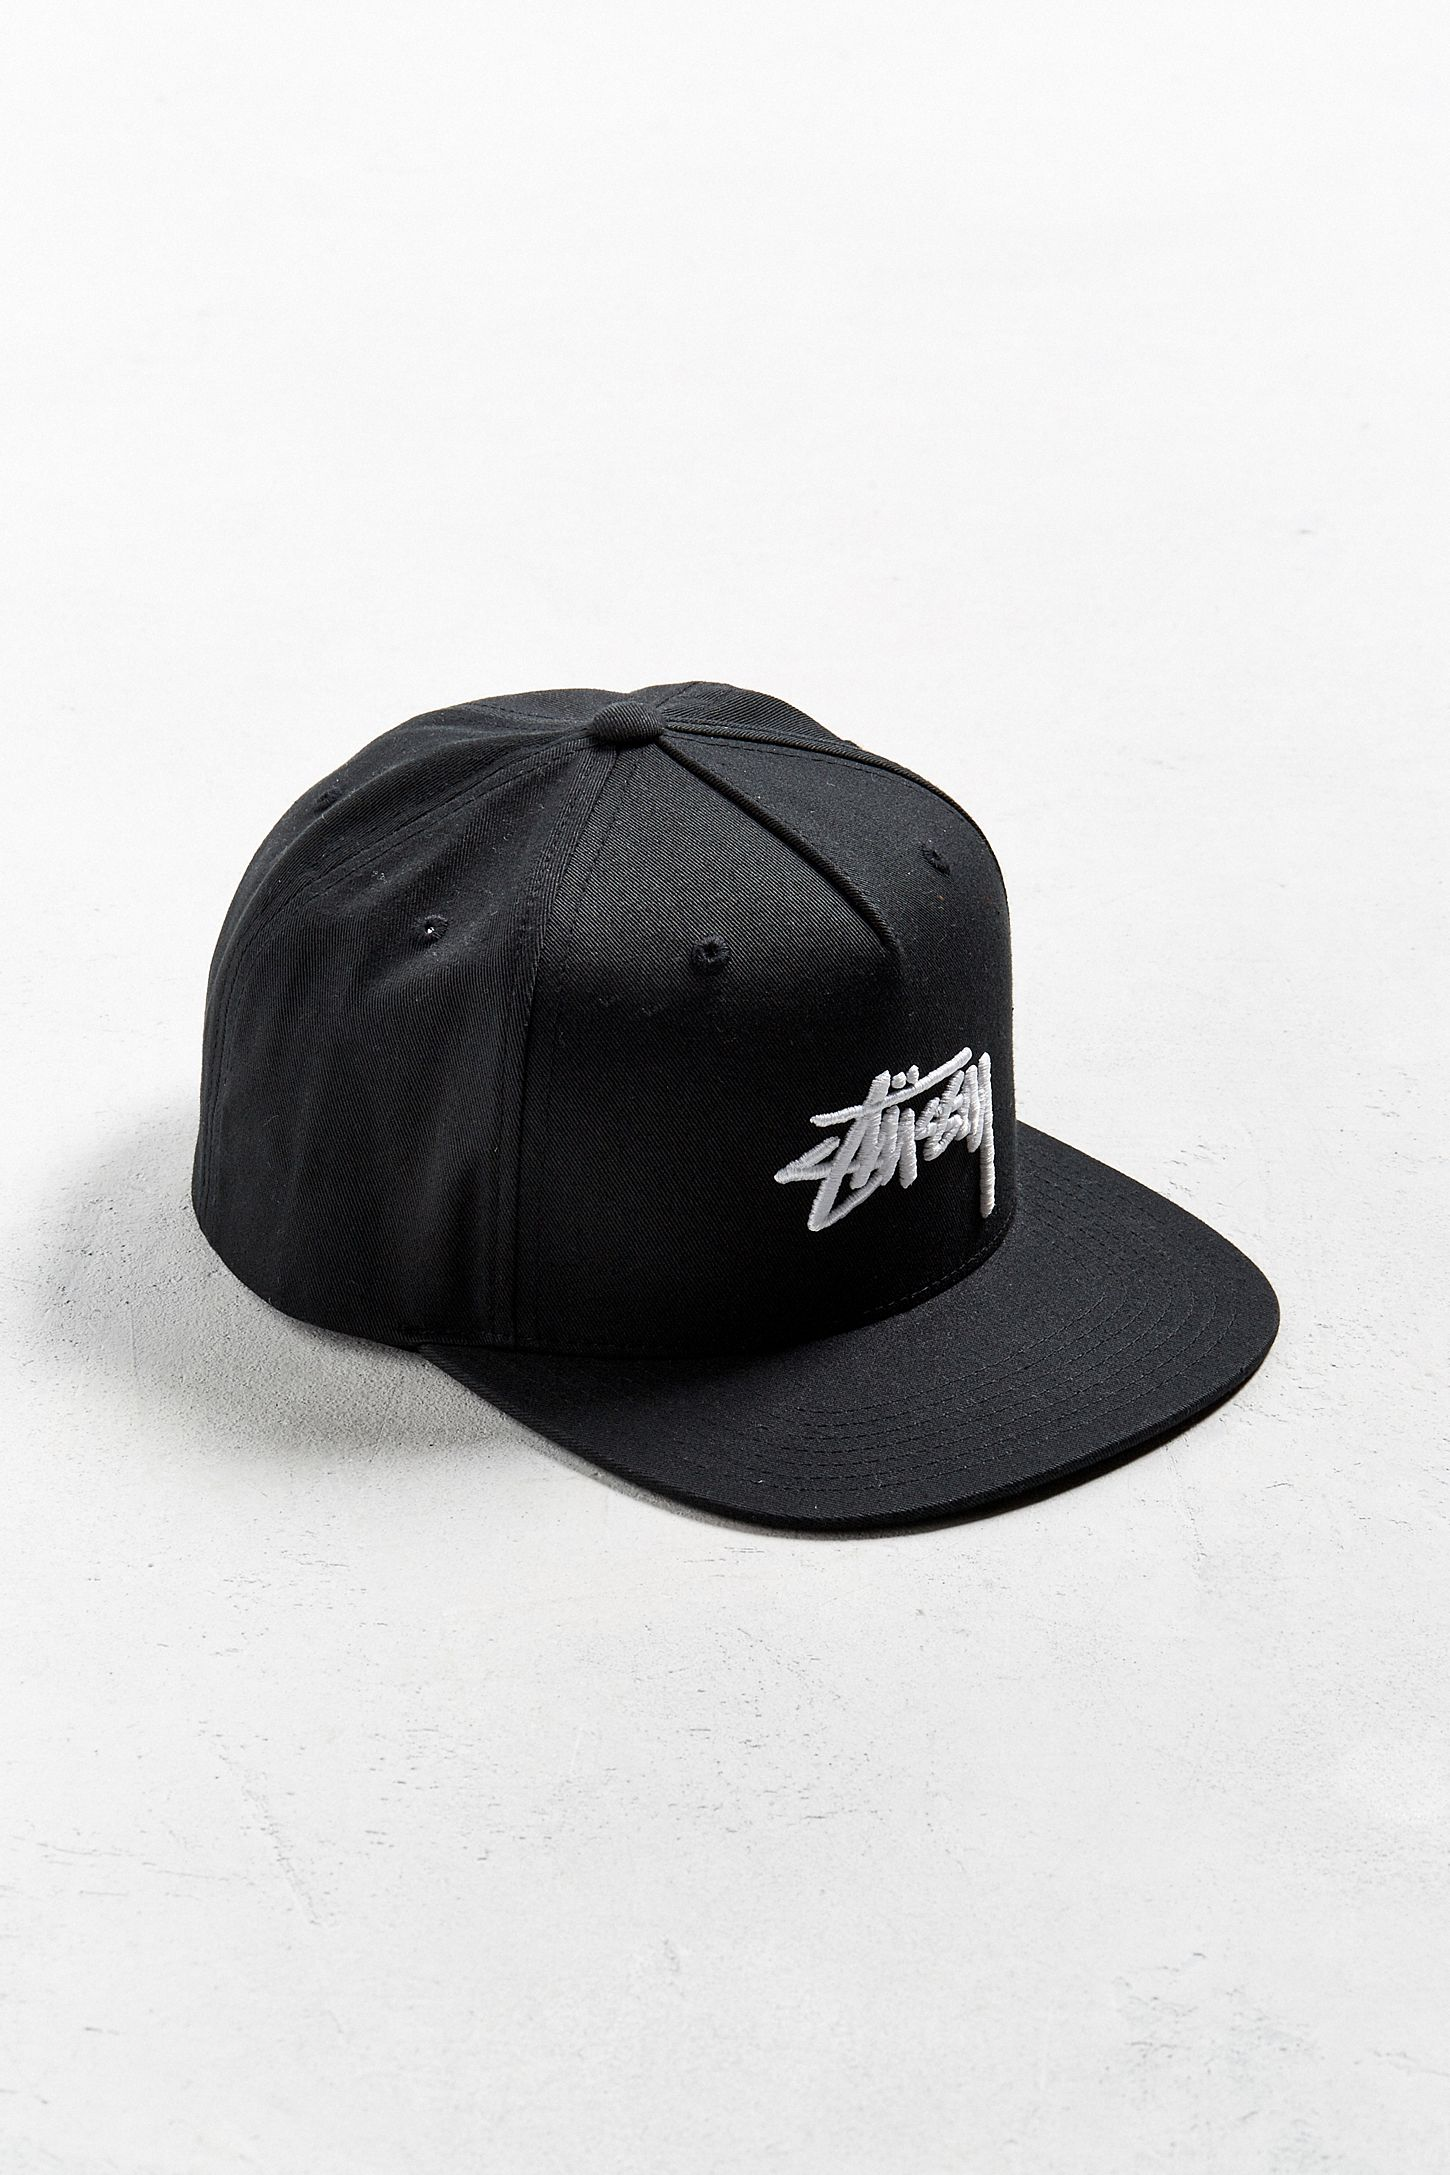 5e26e8dac08 Stussy Snapback Hat. Tap image to zoom. Hover to zoom. Double Tap to Zoom